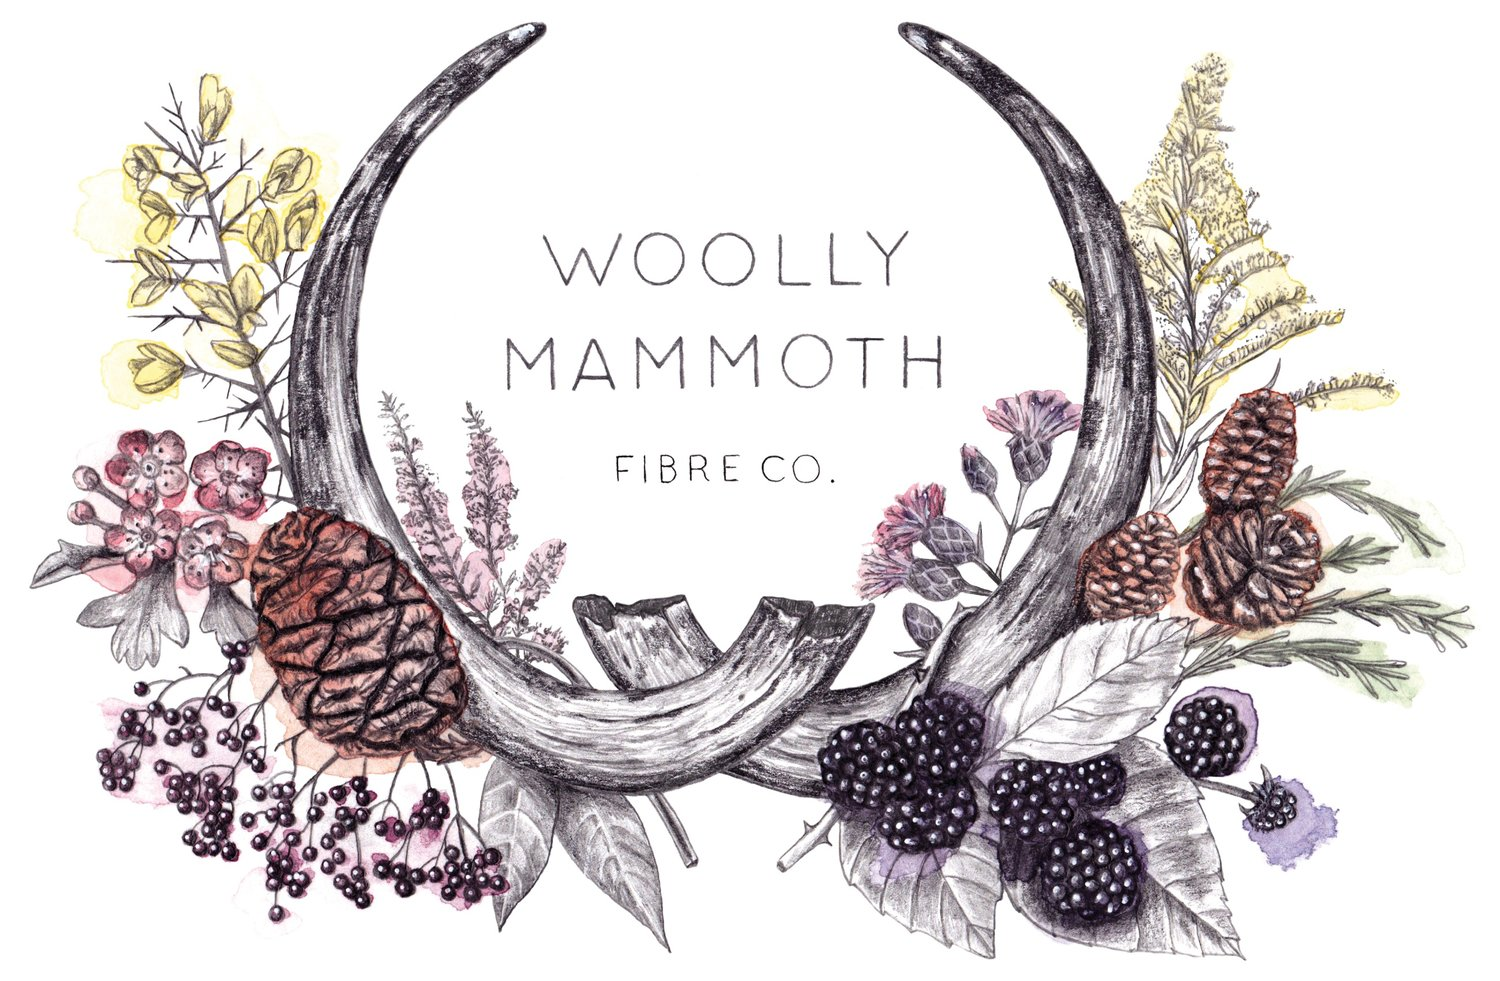 Woolly Mammoth Fibre Company